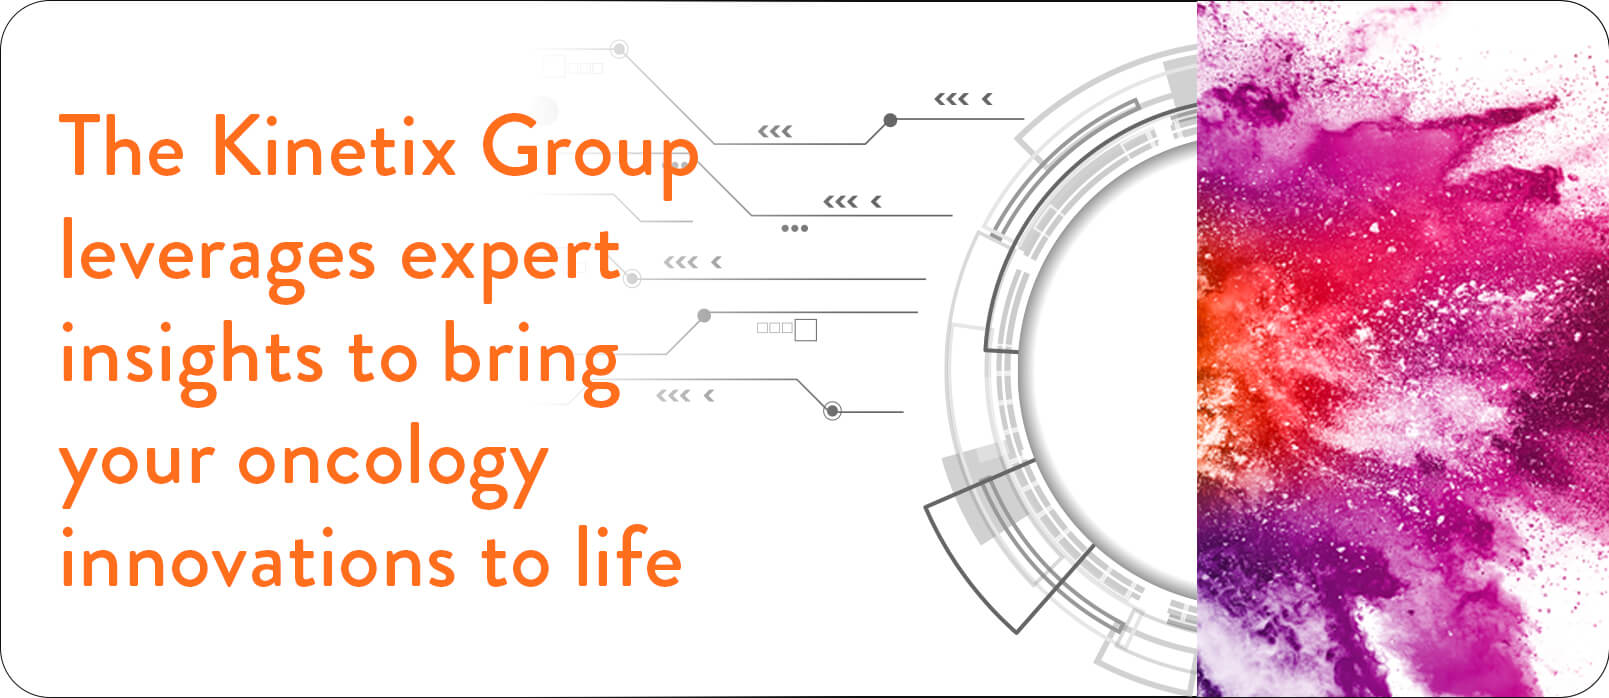 The Kinetix Group leverages expert insights to bring your oncology innovations to life